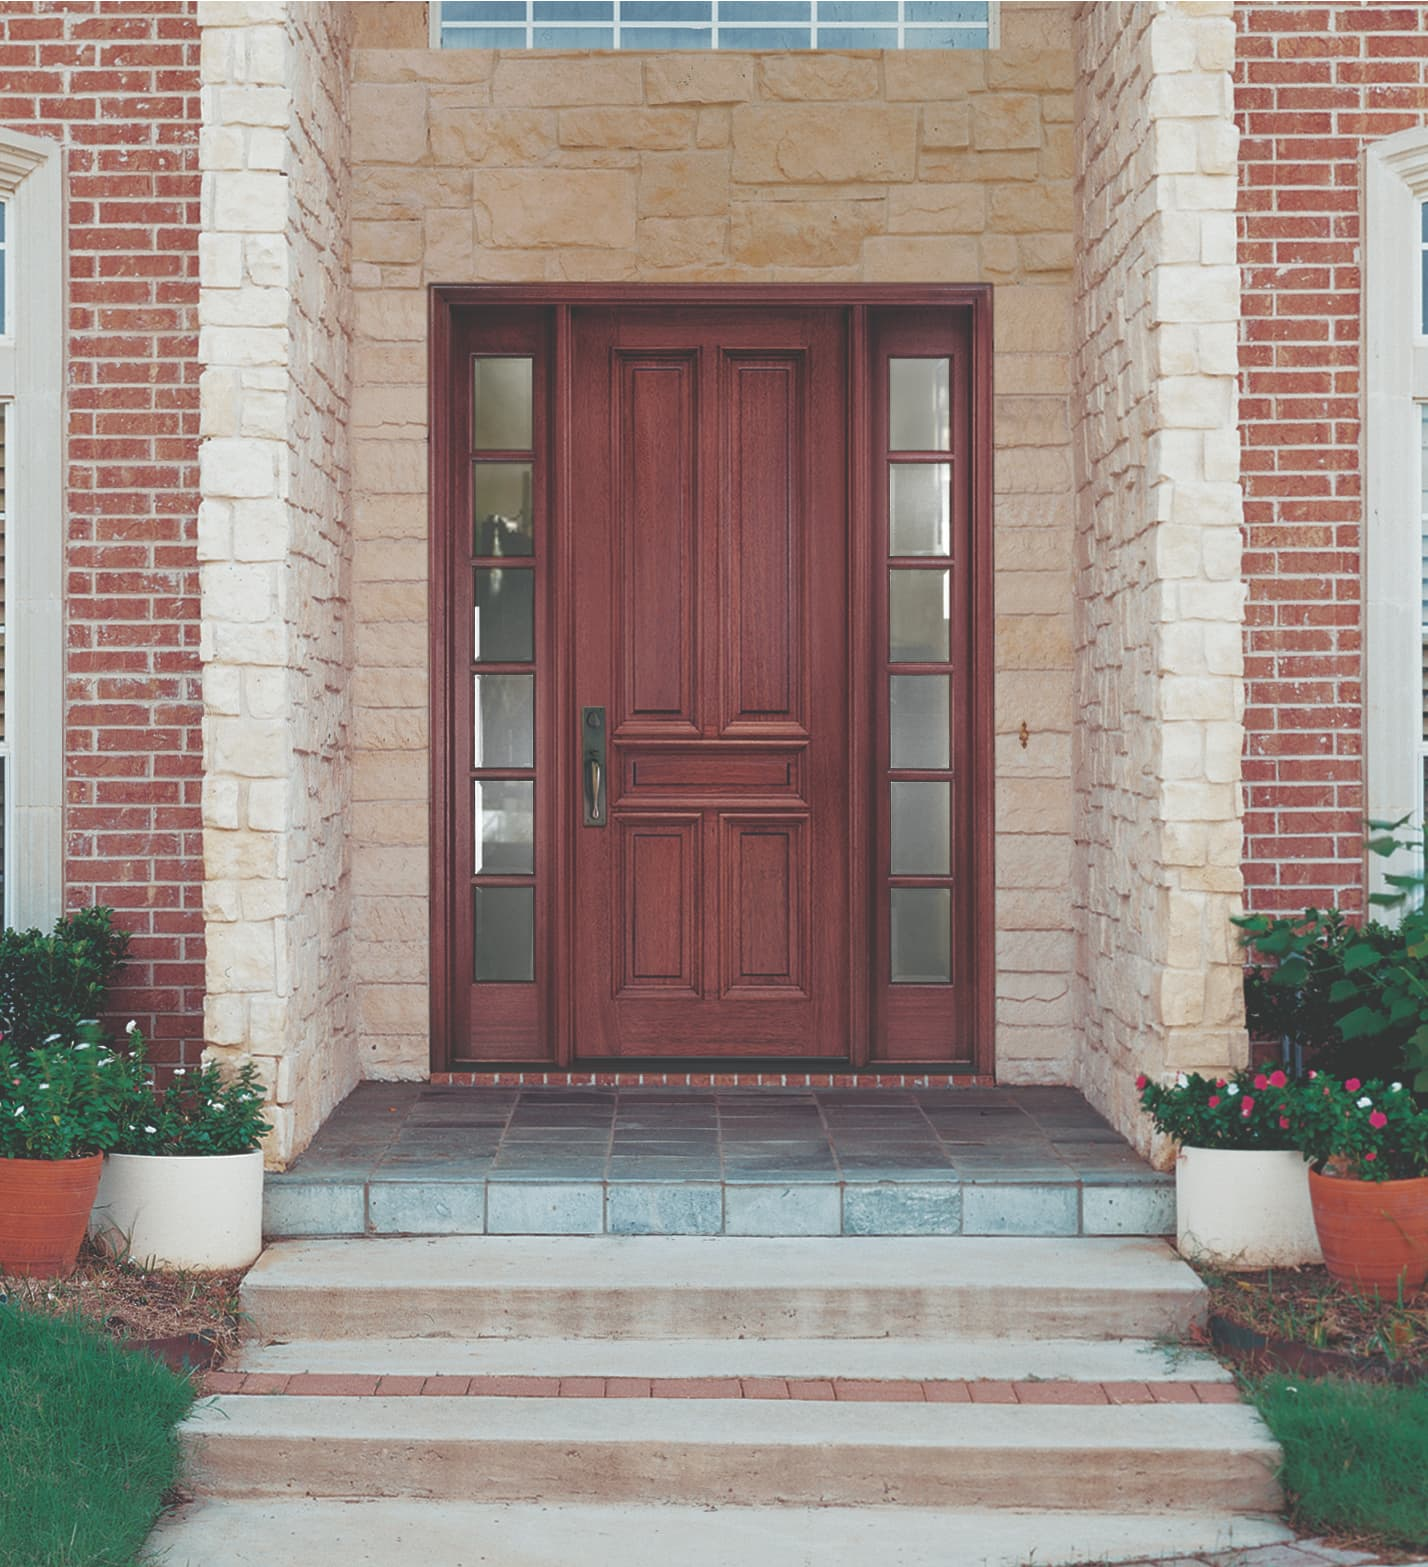 Solid wood door with glass sidelights surrounded by stone entryway